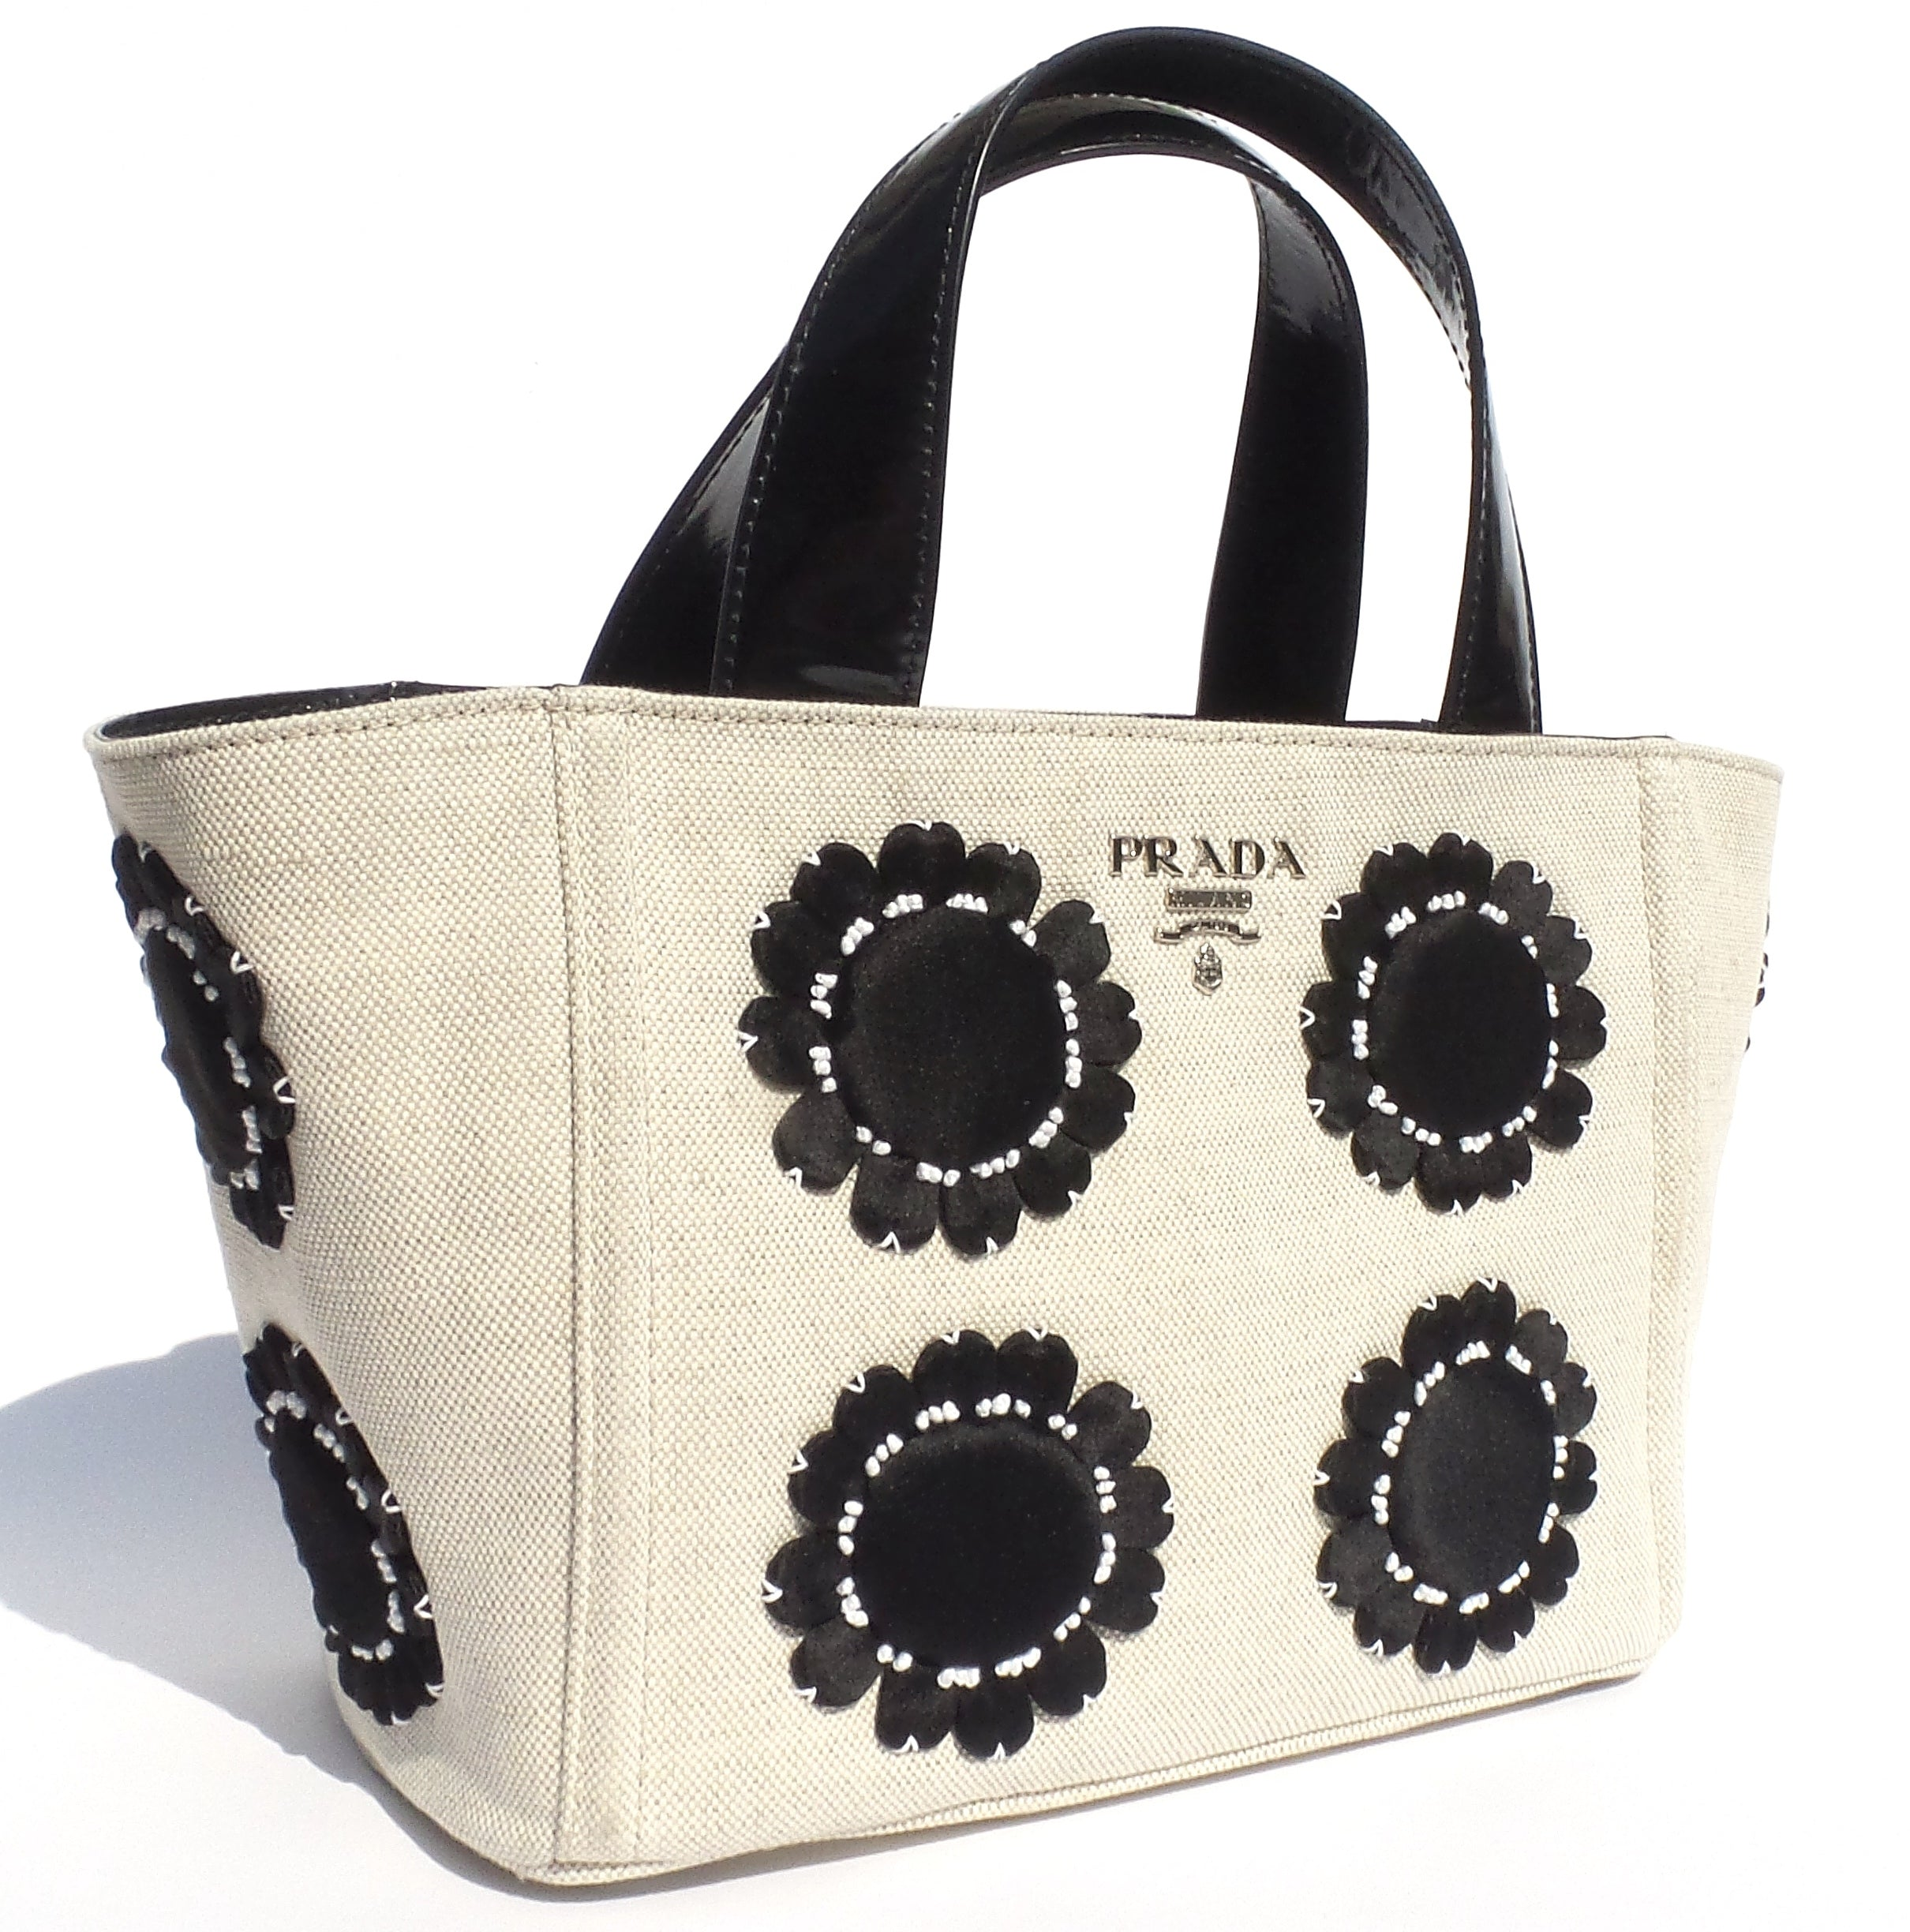 'Sold' PRADA Mistolino Beige Canvas Black Patent Satin Floral Applique Garders Tote Bag